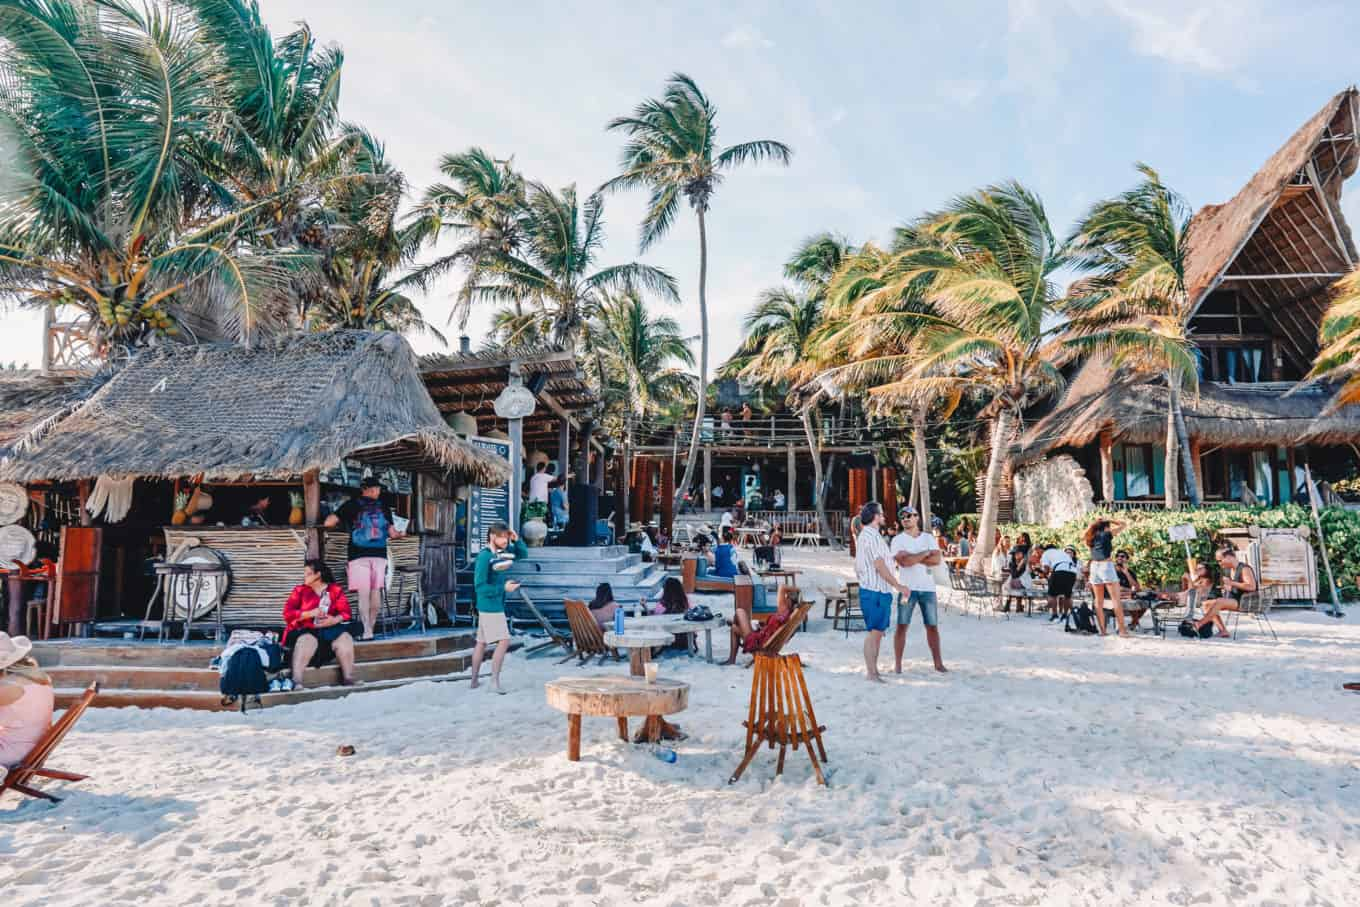 Is Tulum worth the hype? Pros and cons of Tulum